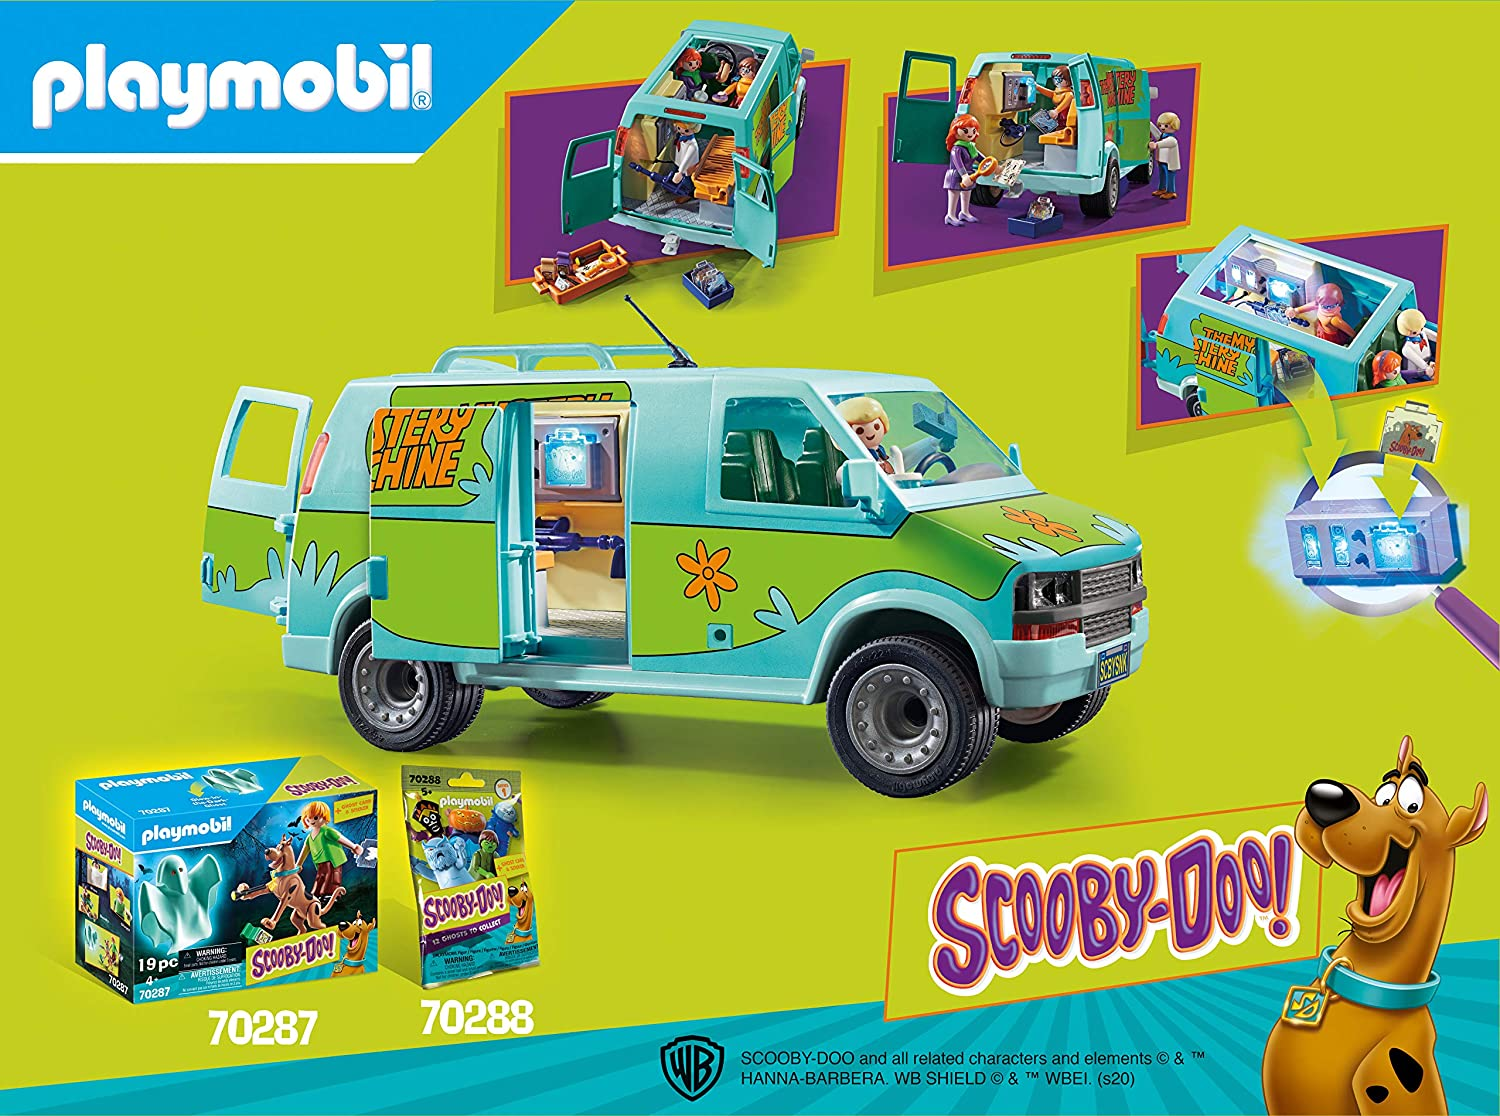 Playmobil Scooby-DOO! Mystery Machine: Toys & Games